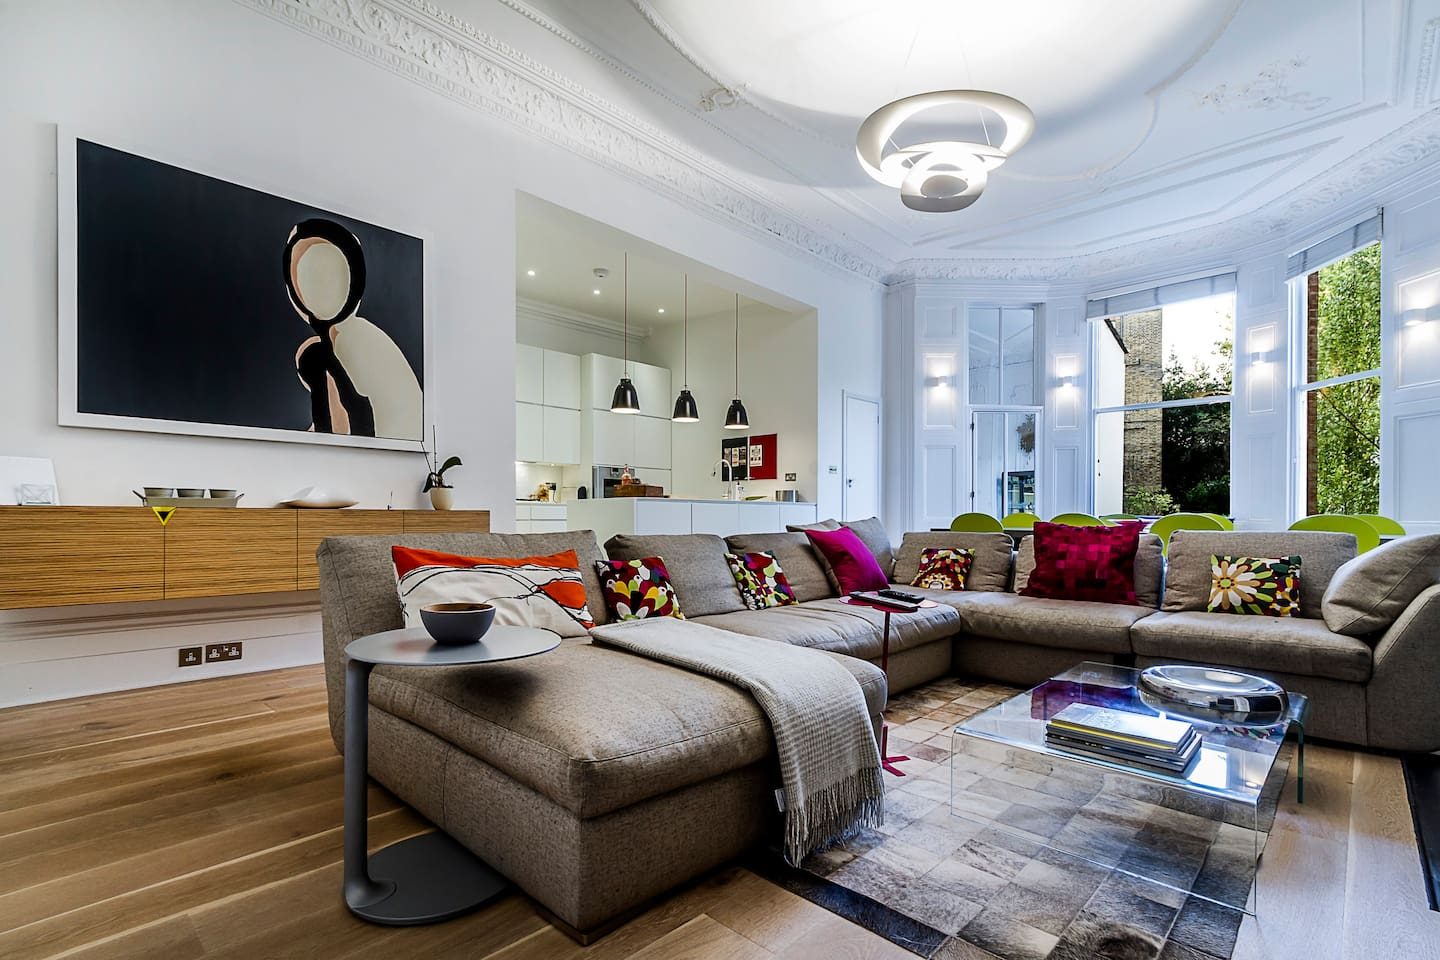 The WOW living room!